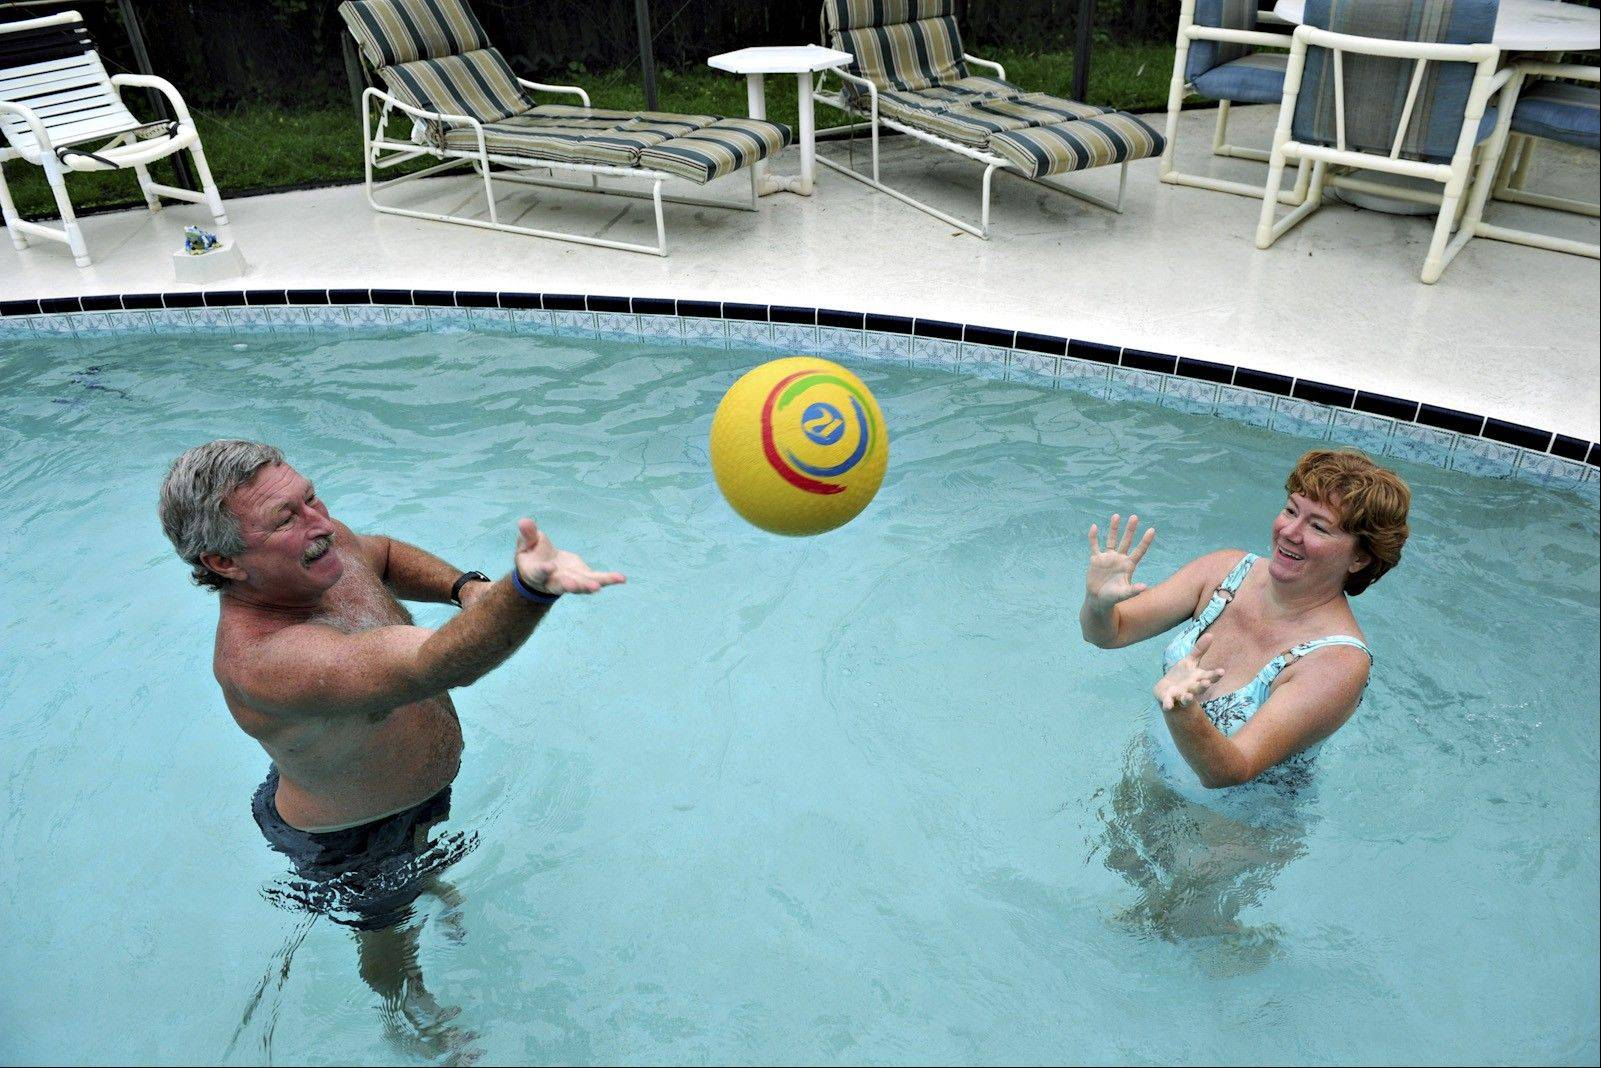 Tom and Linda Sinotte play ball in the pool to keep her skills sharp.